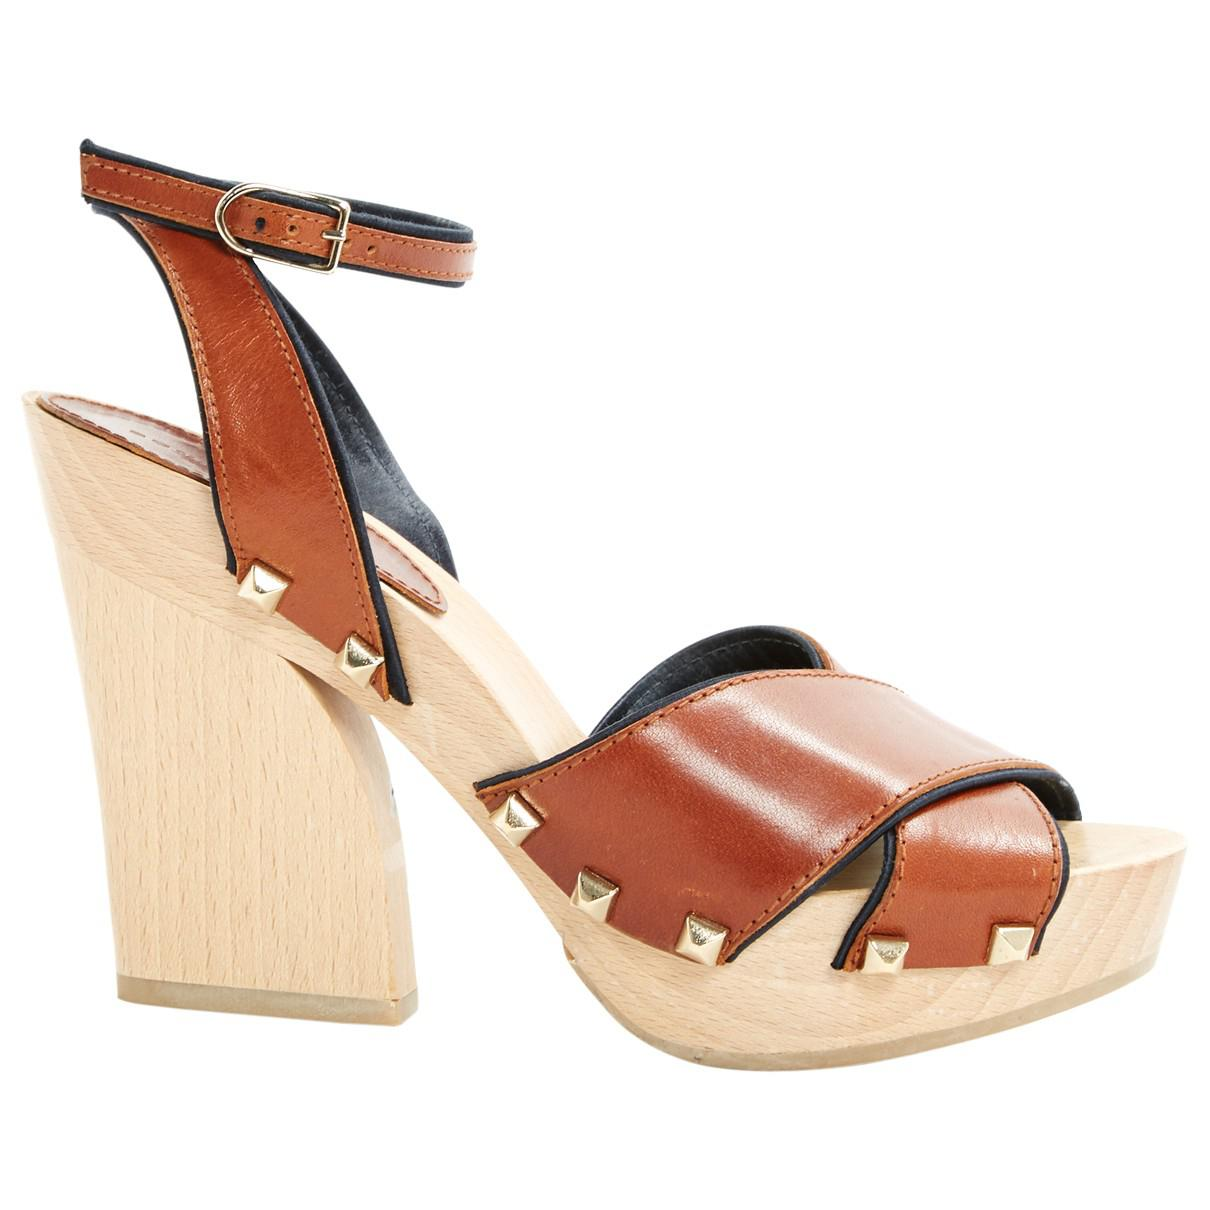 Sonia by Sonia Rykiel Leather Sandals Clearance Footlocker Excellent Online Clearance Discount Discount Real Buy Cheap Outlet Locations twybik5Tu